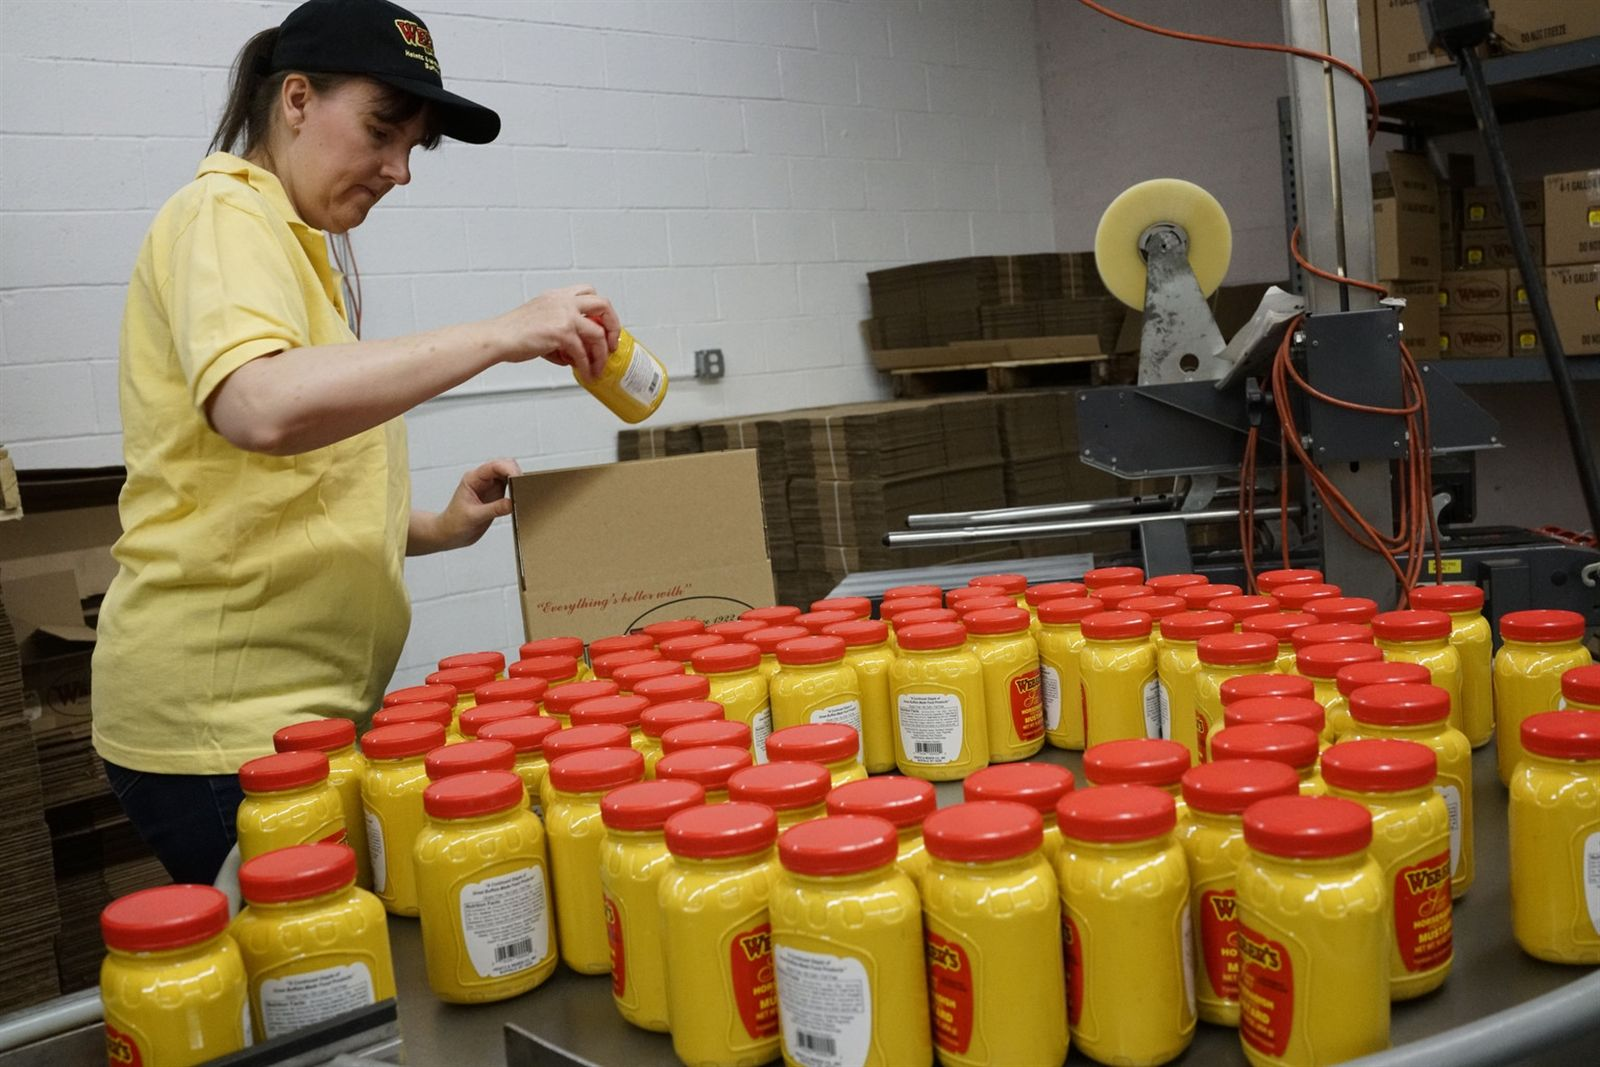 Suzanne Desmond, vice president of the Heintz & Weber Co., boxes freshly poured pints of Weber's Horseradish Mustard as they come off the bottling line at the company's South Buffalo facility. Suzanne's grandfather Joseph Weber created the company with his secret horseradish mustard recipe.